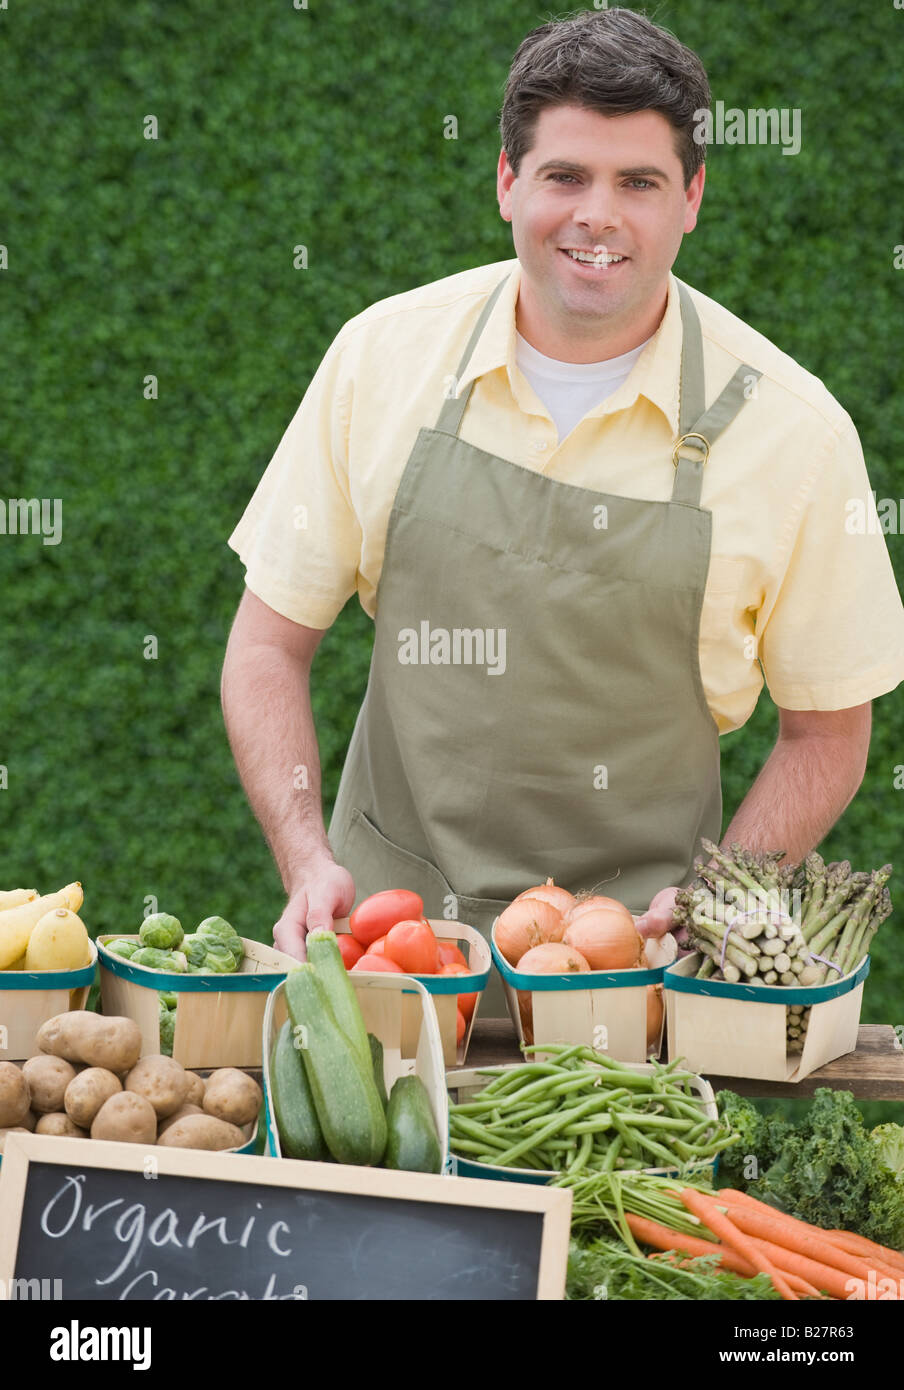 Man next to baskets of vegetables - Stock Image